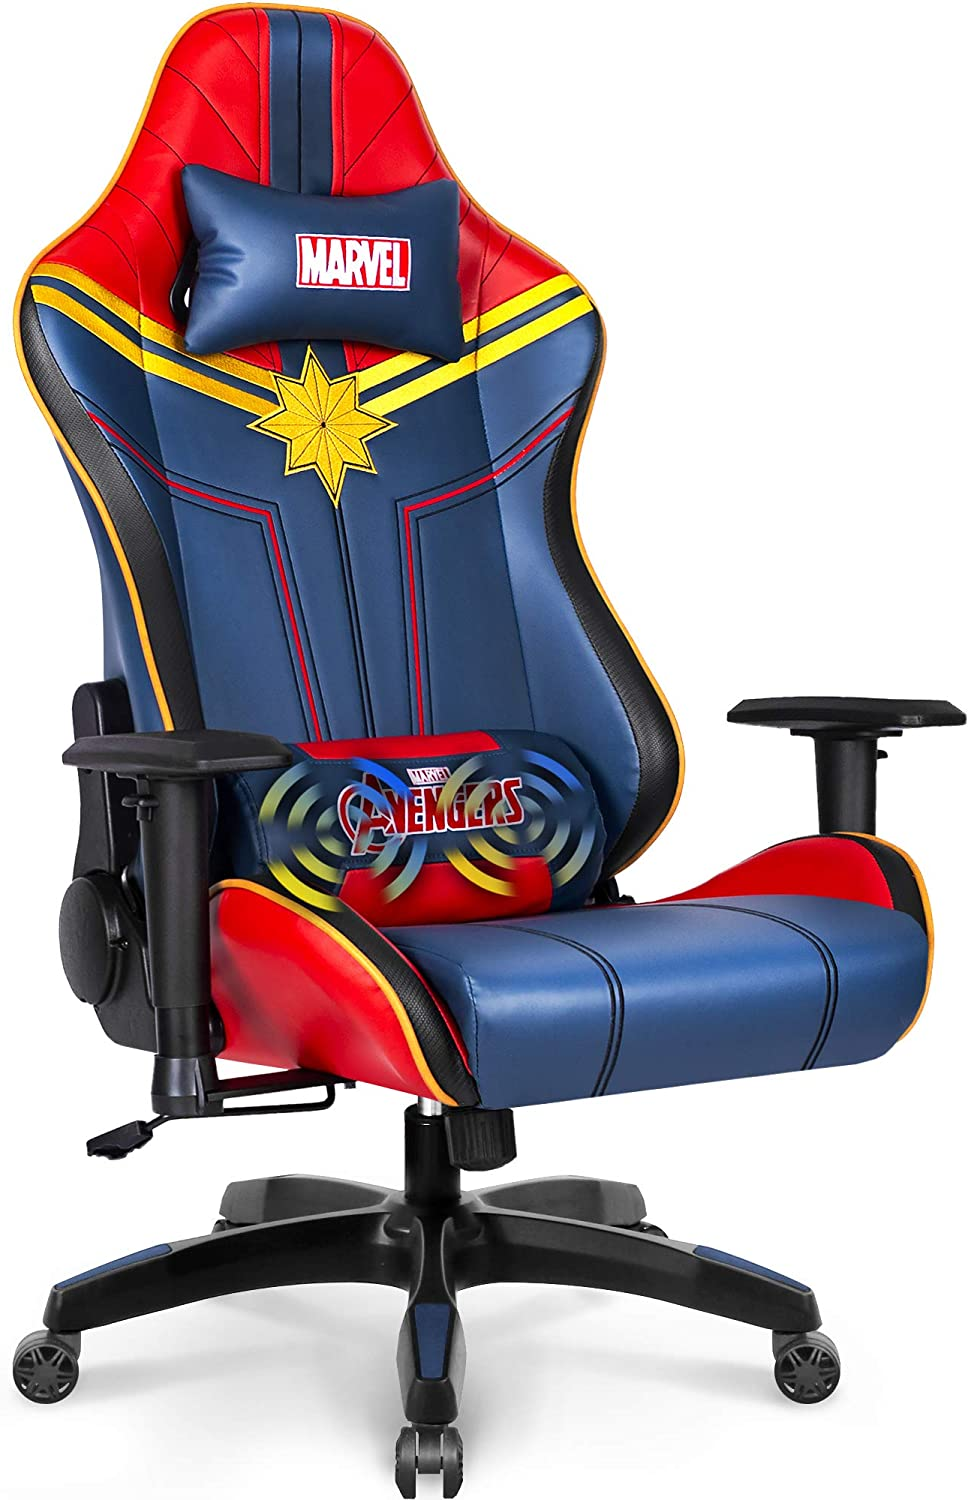 Marvel Avengers Massage Gaming Max 78% OFF Chair Office Racing Desk Superior Computer